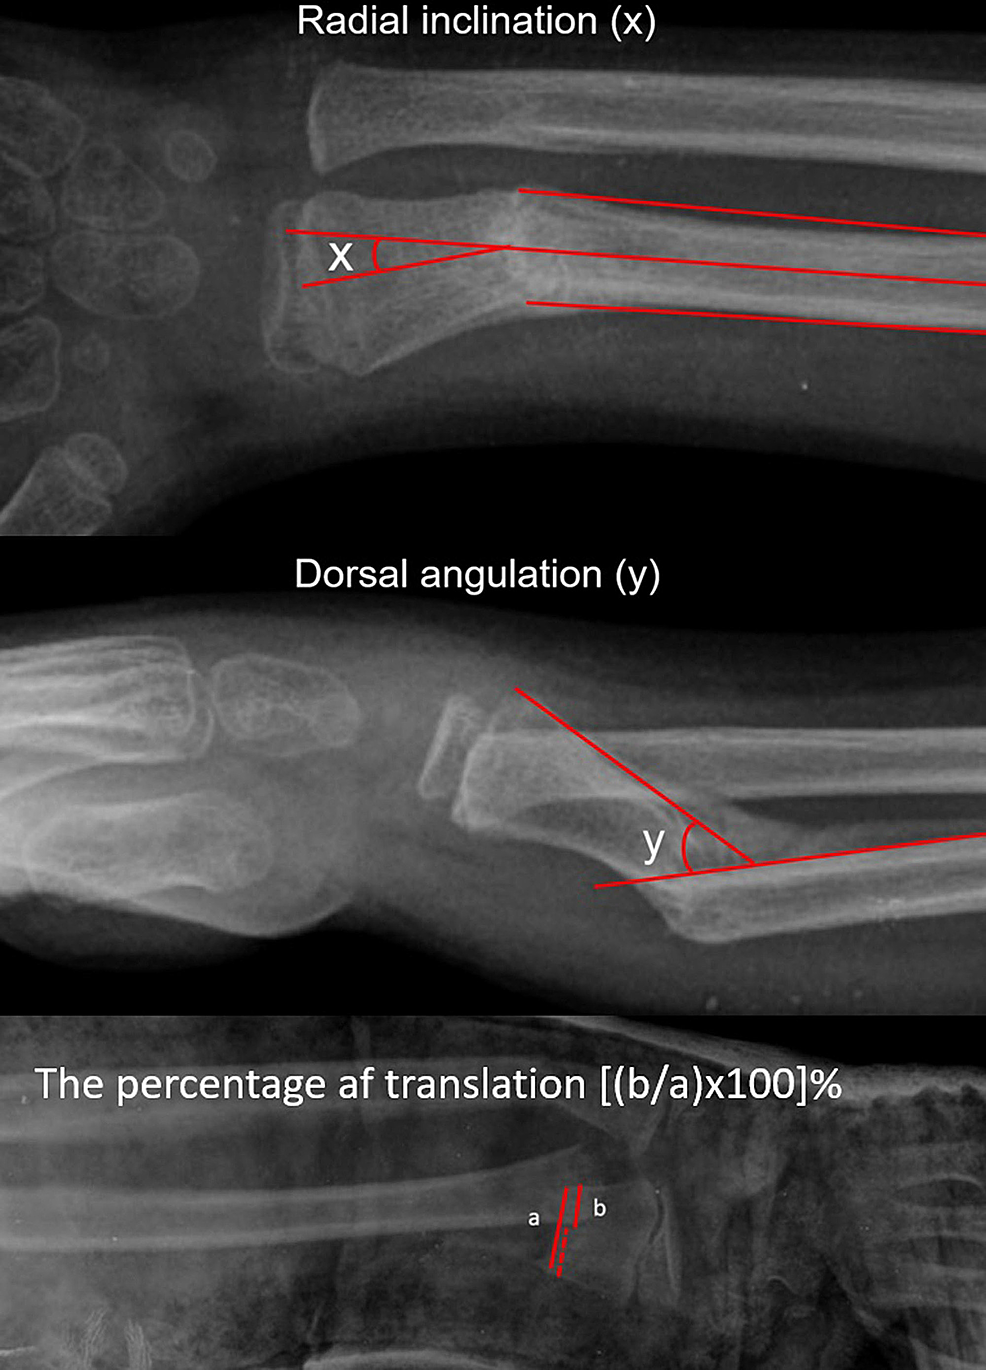 Figures-demonstrating-the-method-of-measurements-of-angulations-and-translation.-(a)-Measurement-of-radial-inclination,-(b)-dorsal-angulation-and-(c)-the-percentage-of-translation.